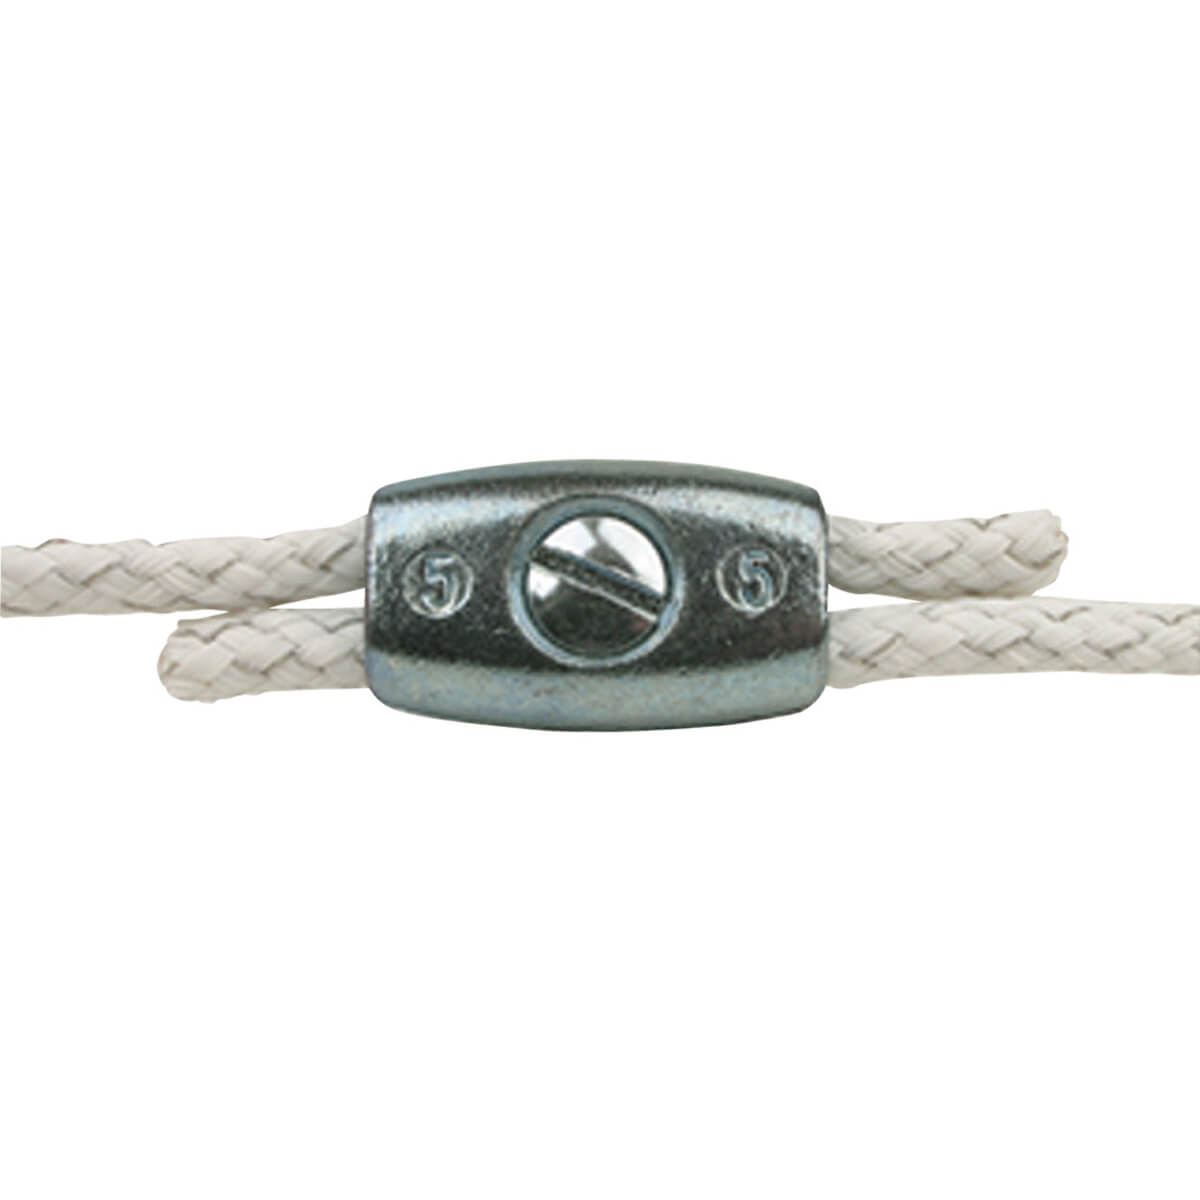 Power Wizard C-2 Electric Rope Clamp